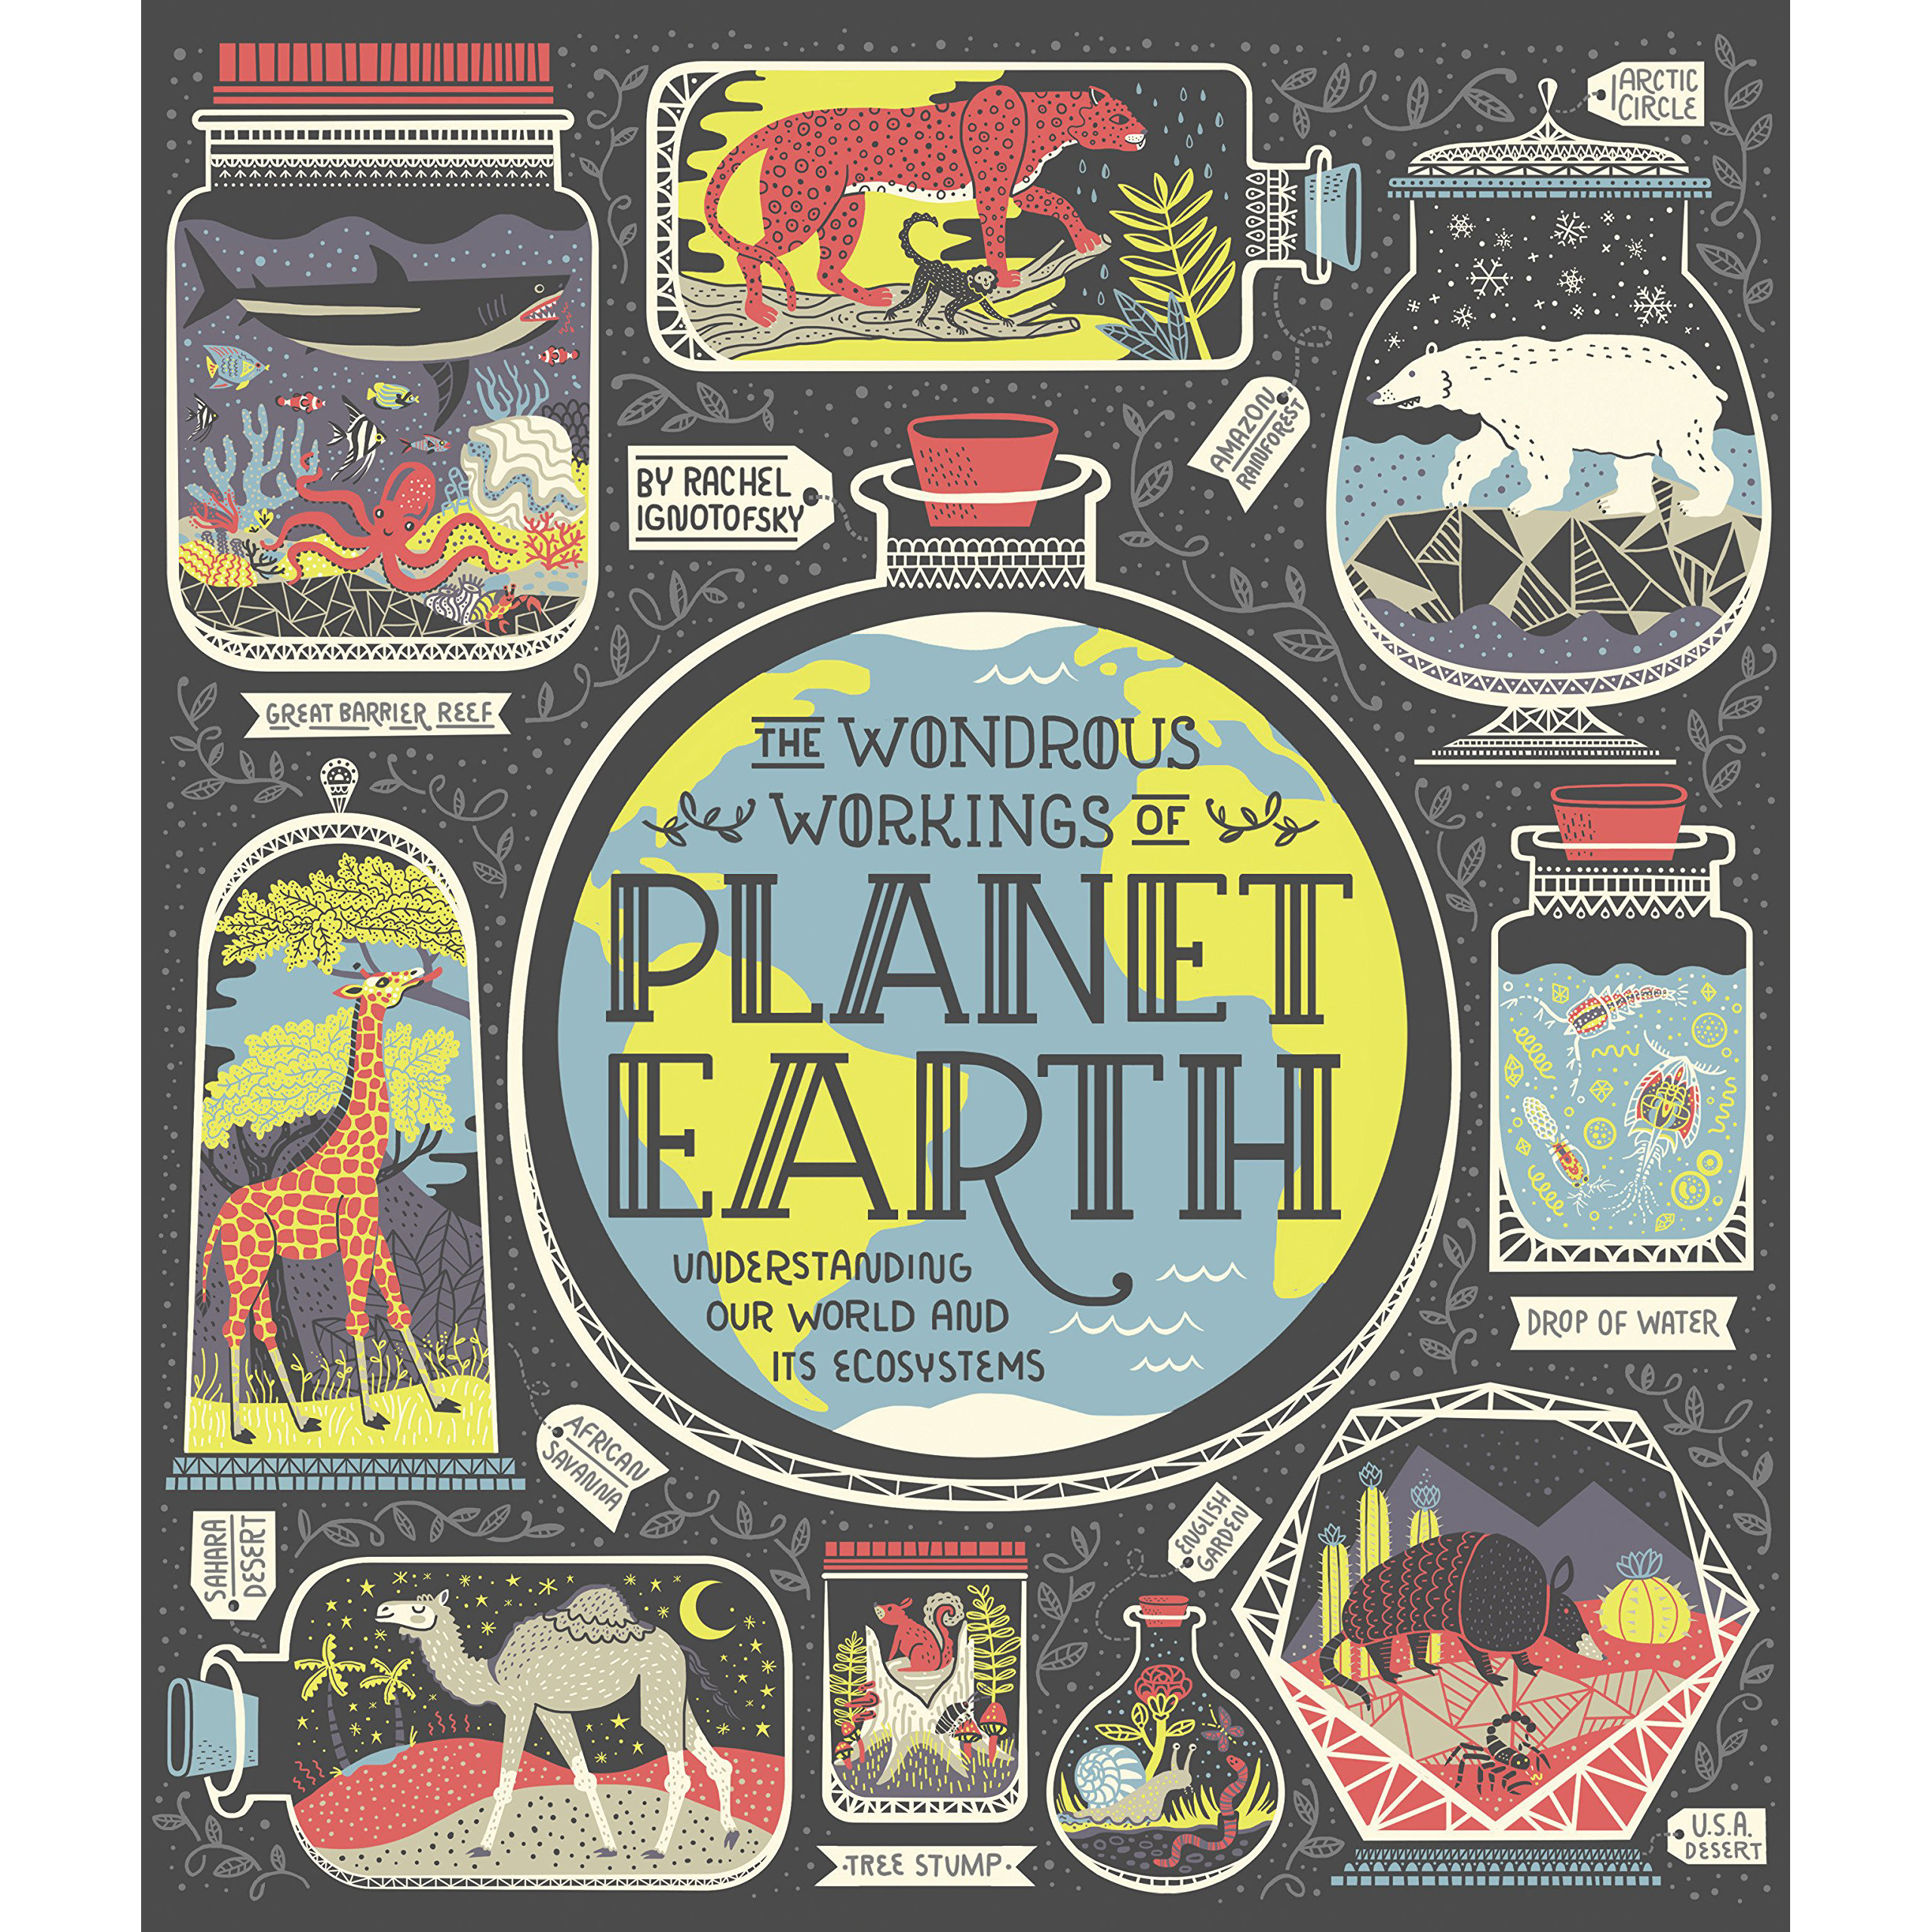 The Wonderous Workings of Planet Earth 1